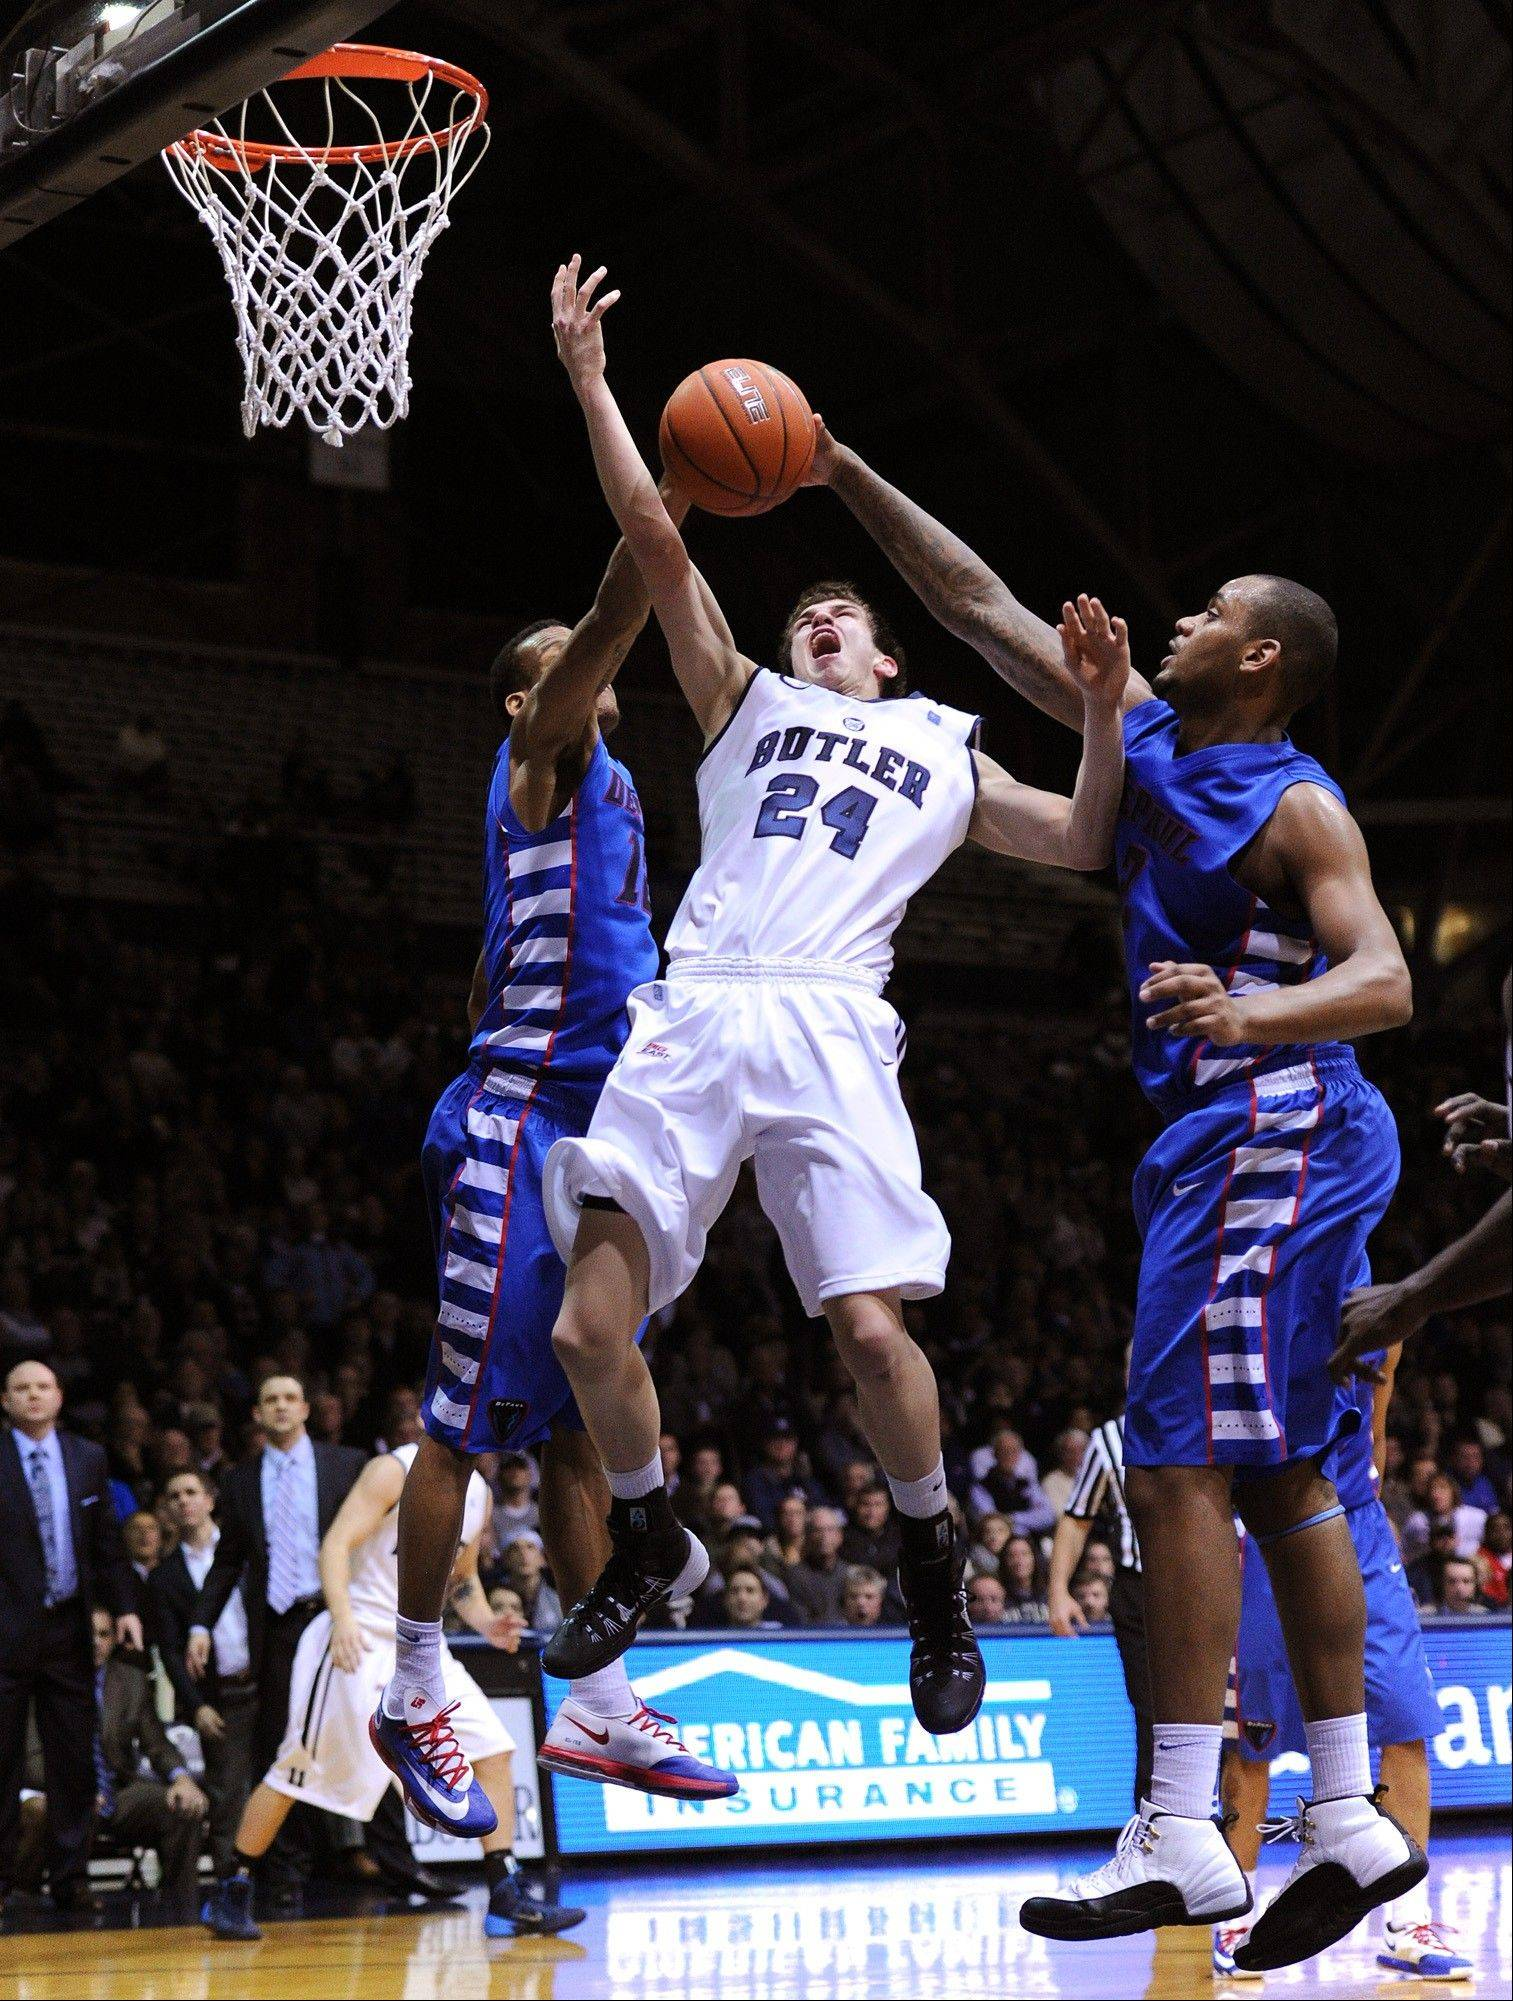 Butler guard Kellen Dunham has his shot blocked by DePaul center Tommy Hamilton IV during an NCAA college basketball game Thursday, Jan. 9, 2014, in Indianapolis. DePaul won 99-94 in double overtime.